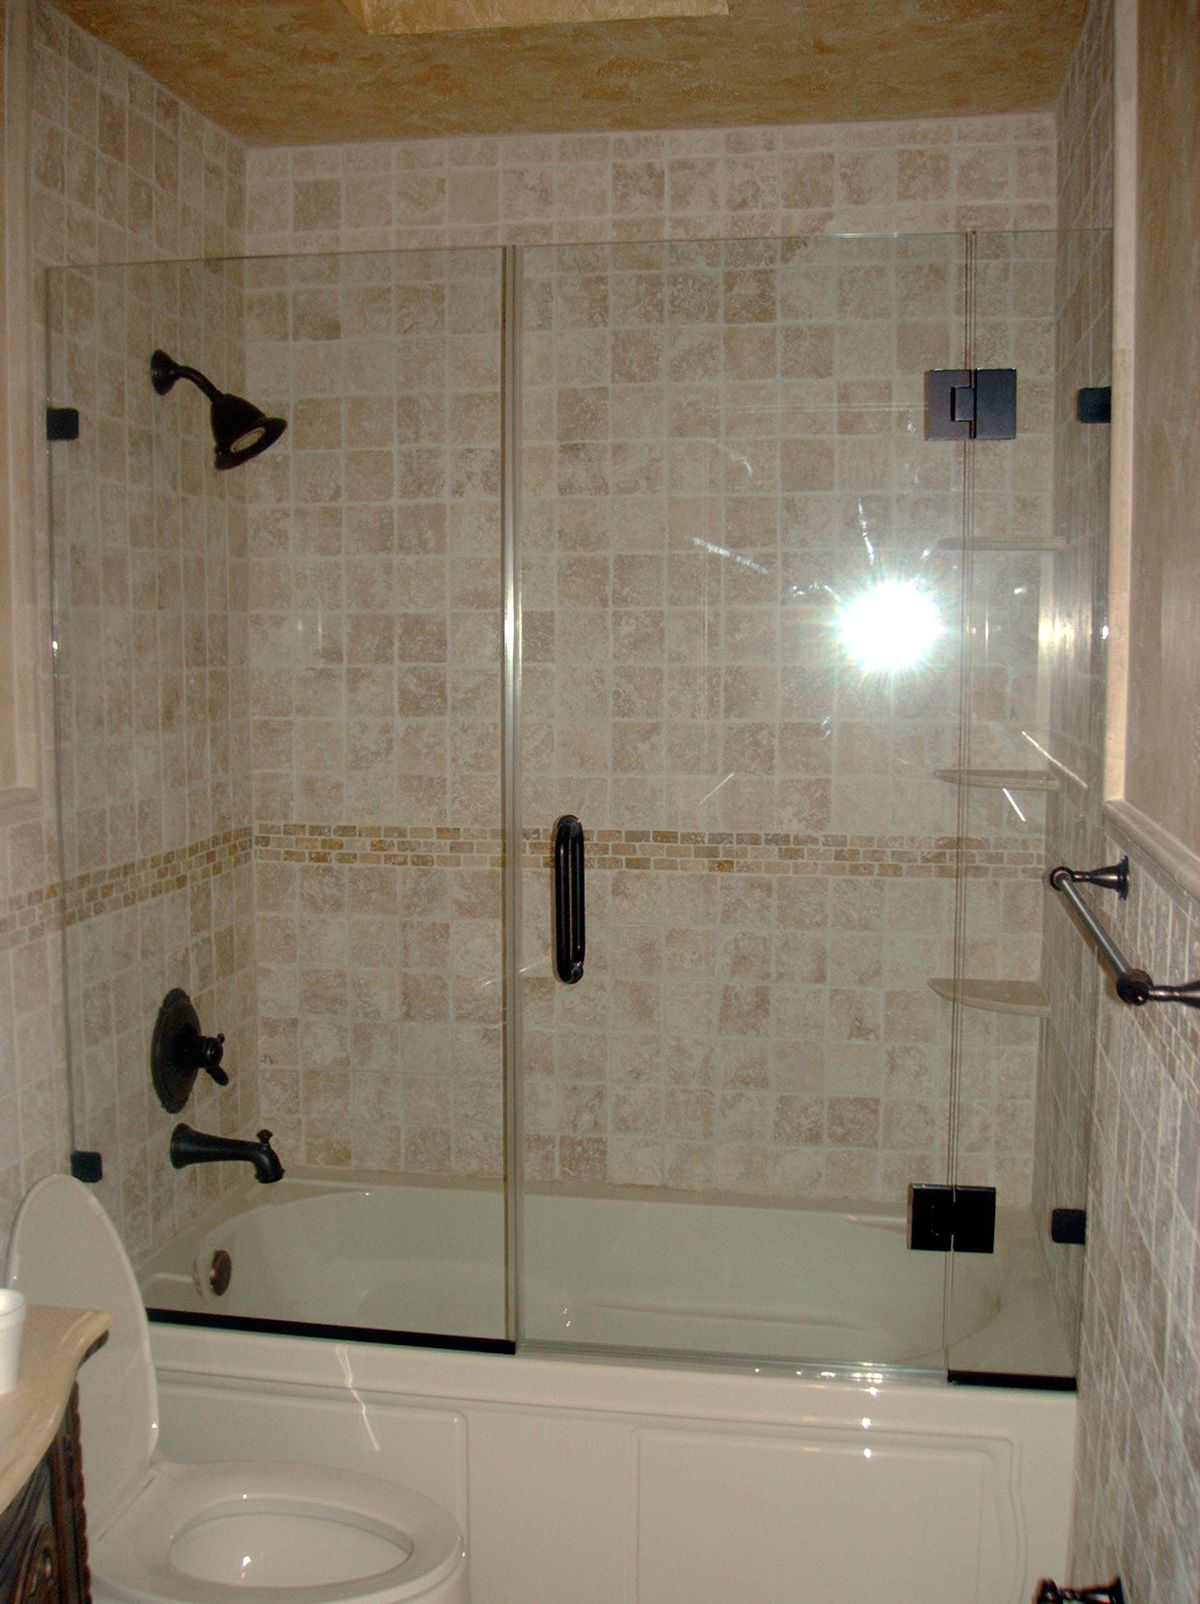 tub valuable doors door clear bath framed glass modern shower idea waagee decoration